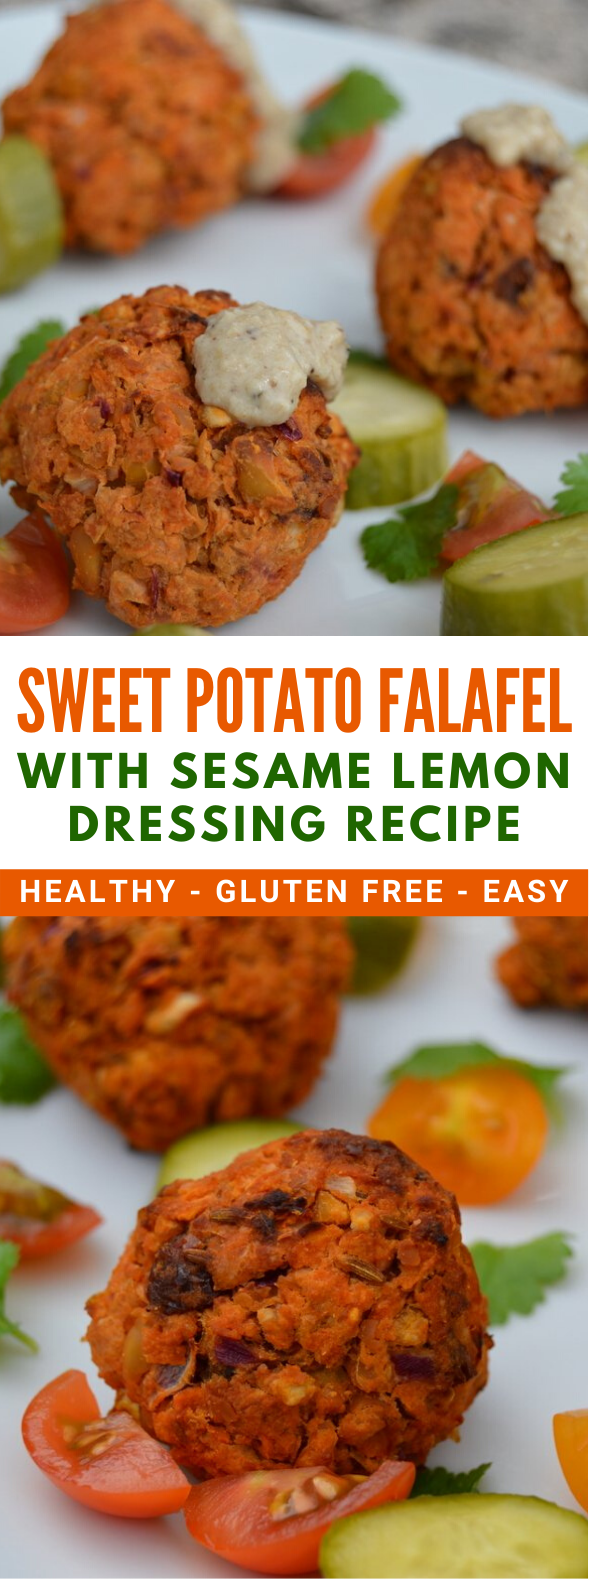 SWEET POTATO FALAFEL WITH SESAME LEMON DRESSING RECIPE #healthydiet #veggies